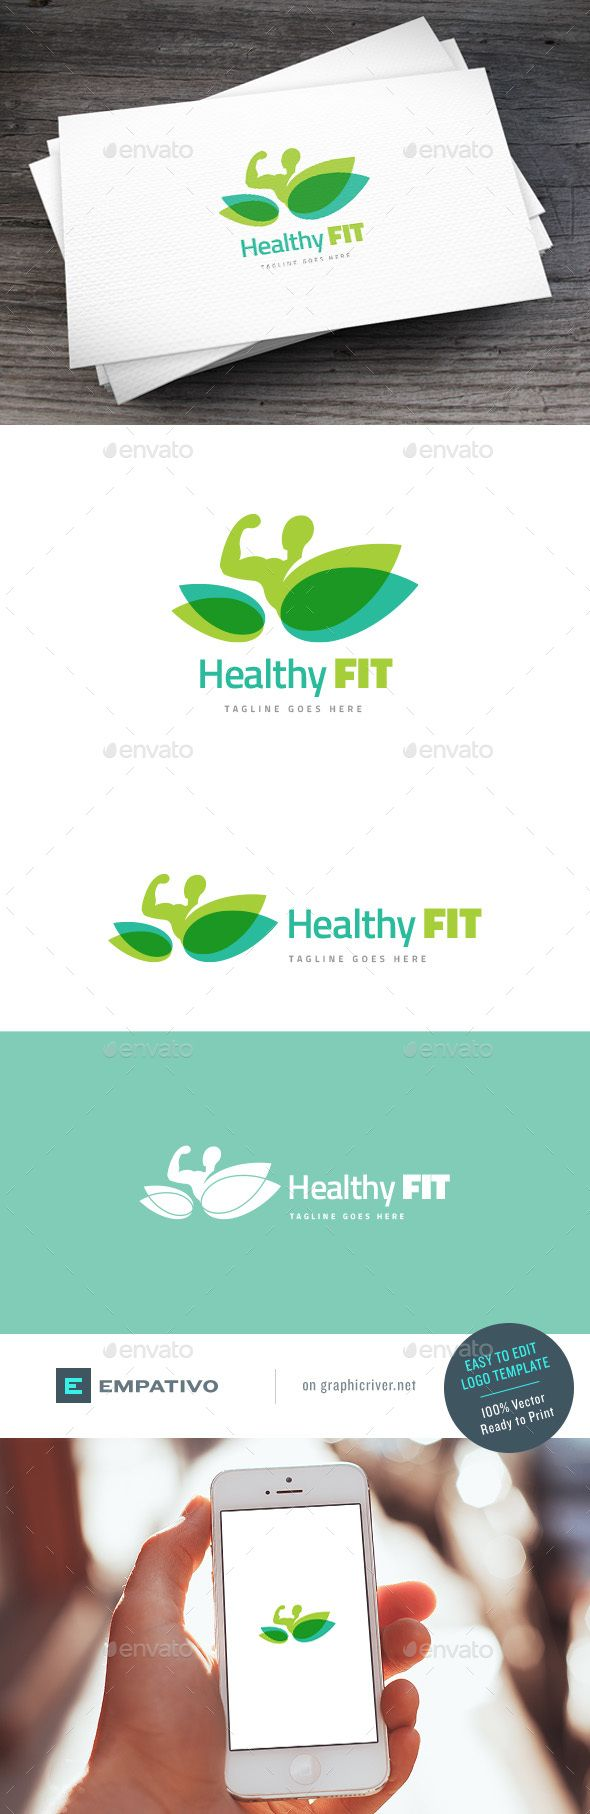 Healthy Fit Logo Template - Humans Logo Templates Download here : http://graphicriver.net/item/healthy-fit-logo-template/15733766?s_rank=173&ref=Al-fatih